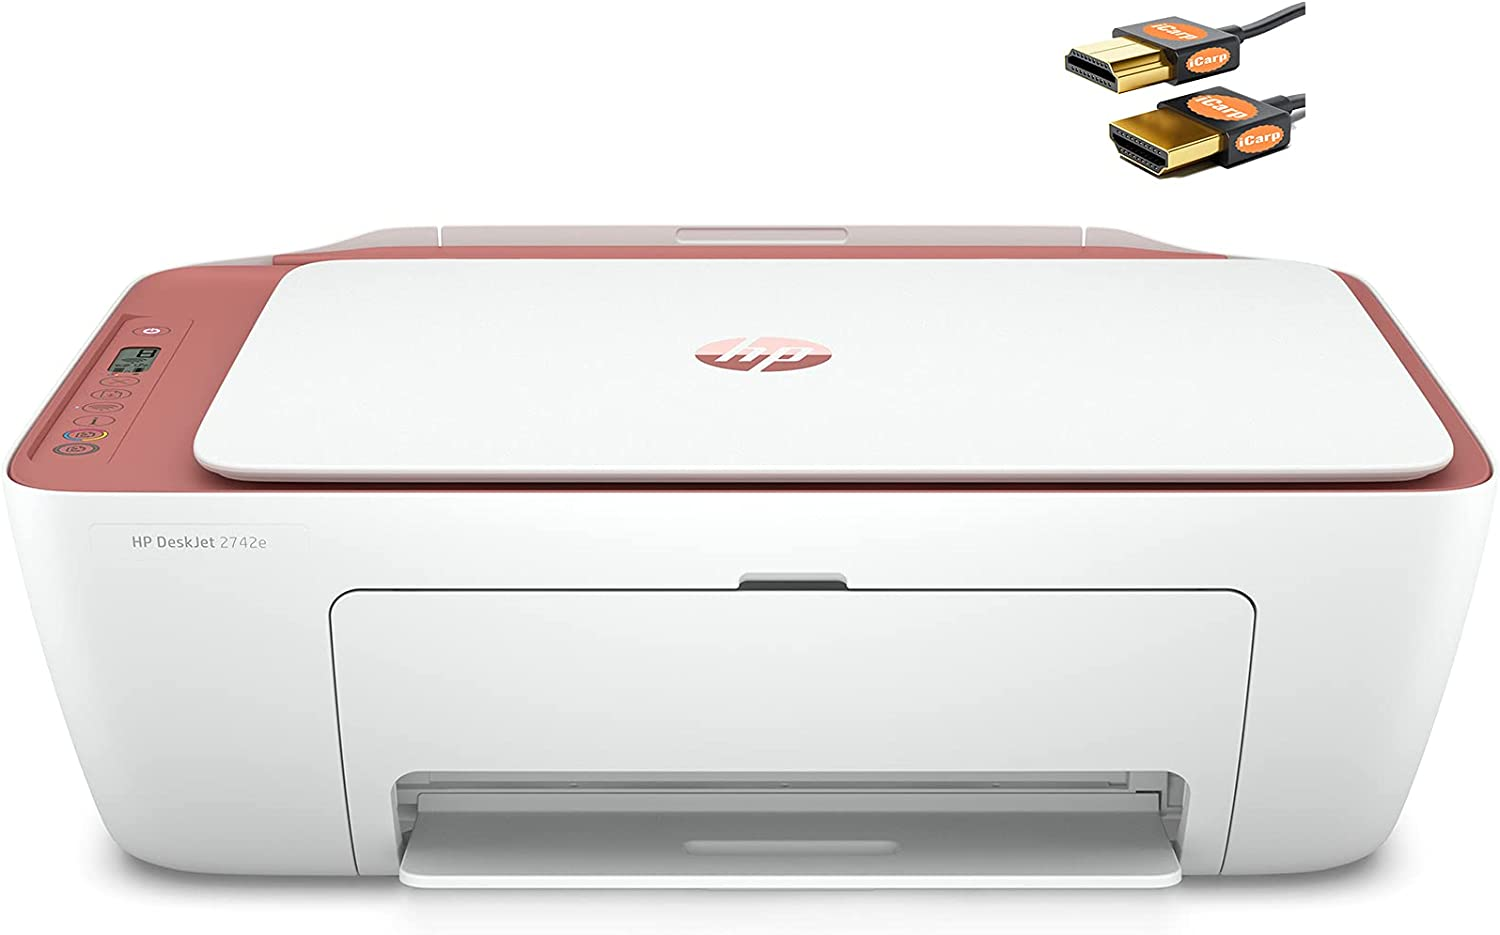 HP DeskJet 2700 Series Wireless Inkjet Color All-in-One Printer - Print Copy Scan Fax - Mobile Printing - WiFi USB Connectivity - Up to 7 ISO PPM - Up to 4800 x 1200 DPI - Cinnamon + HDMI Cable